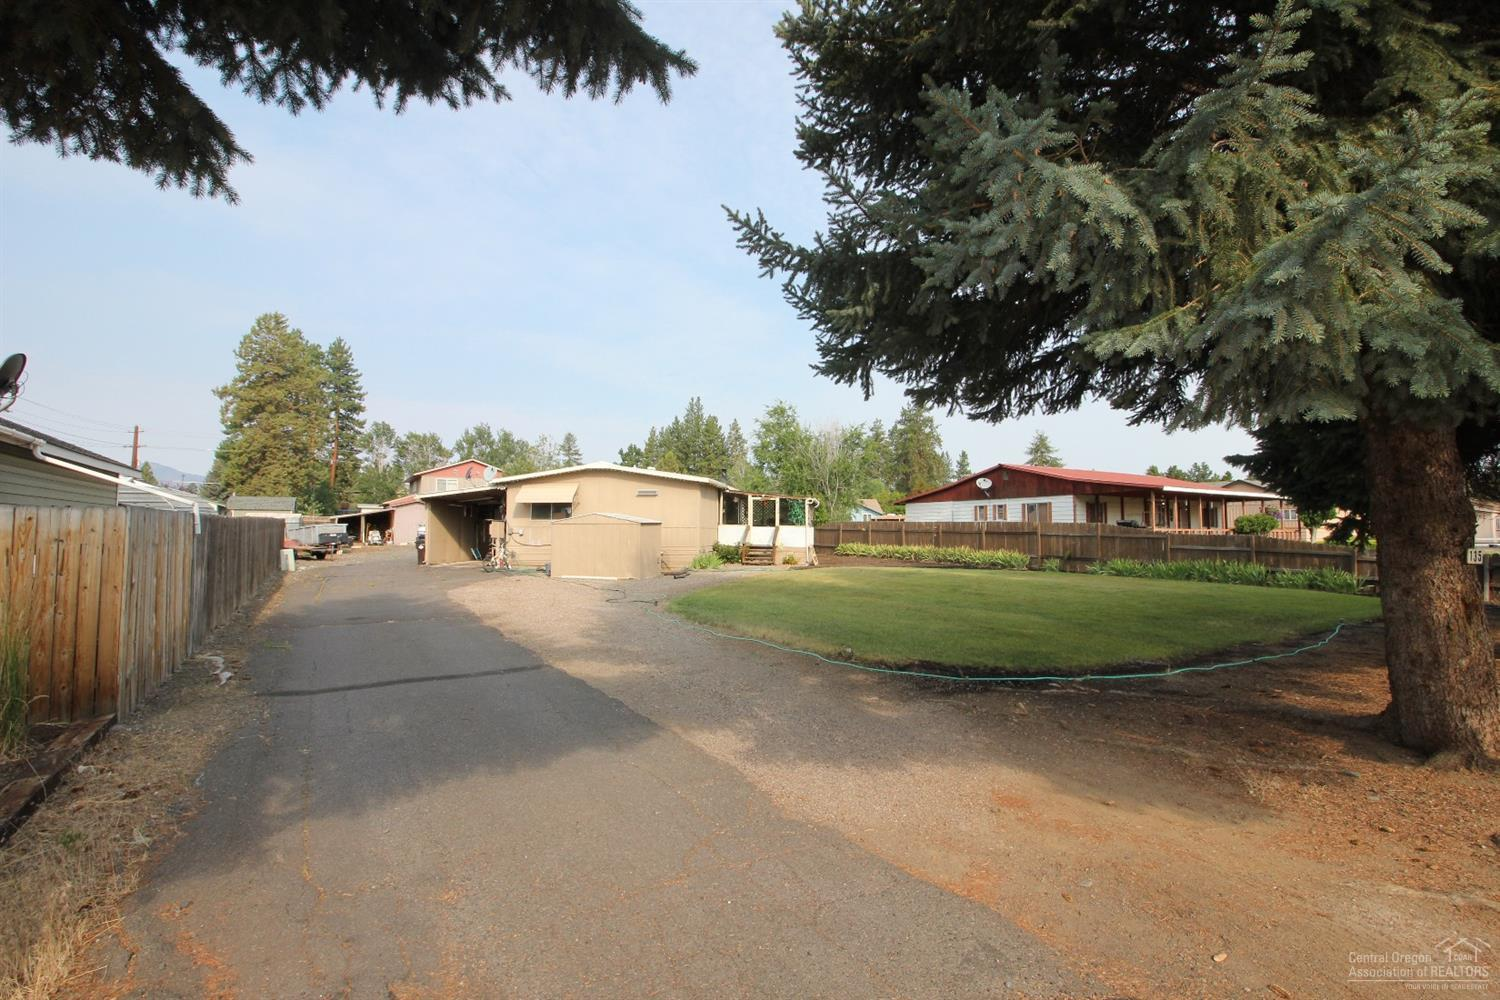 Driveway with covered carport